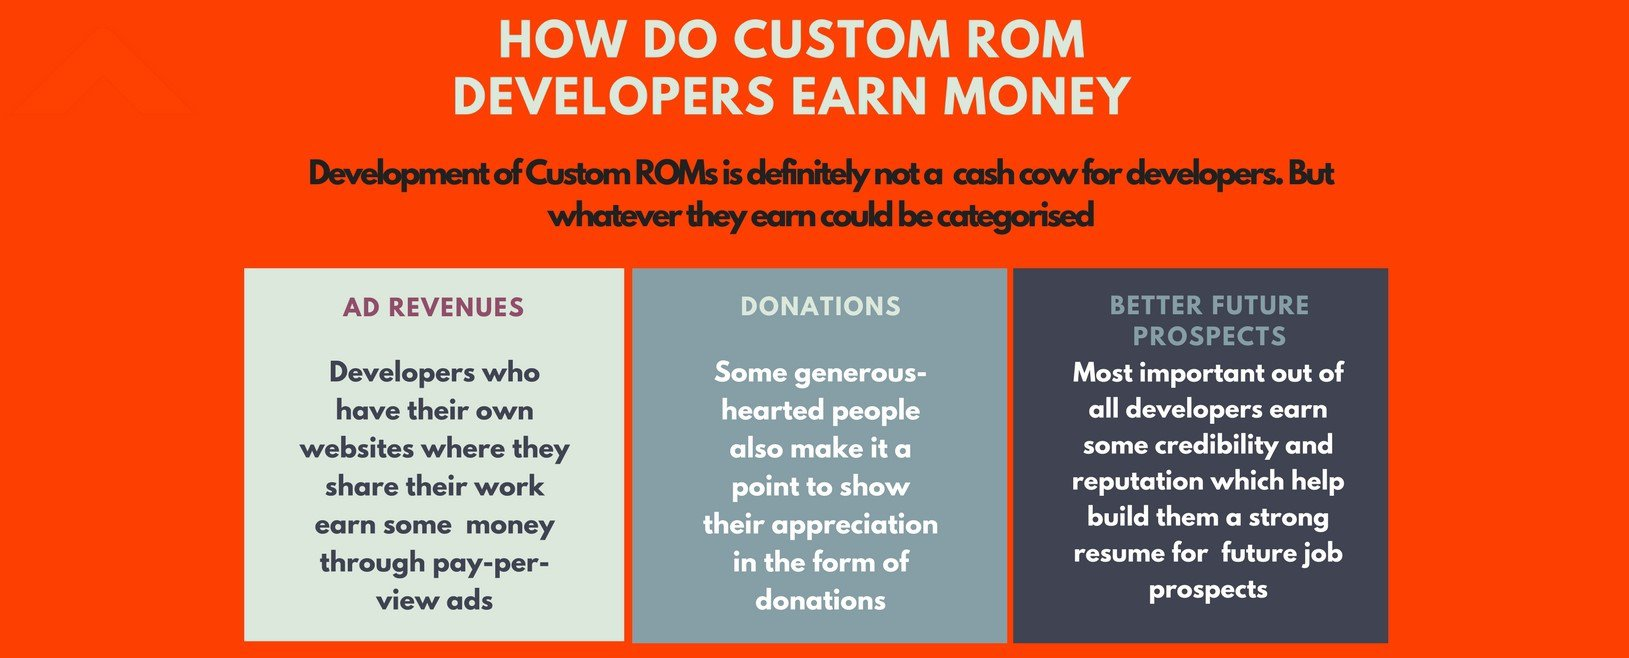 How do Custom ROM developers earn money? - EOTO Tech